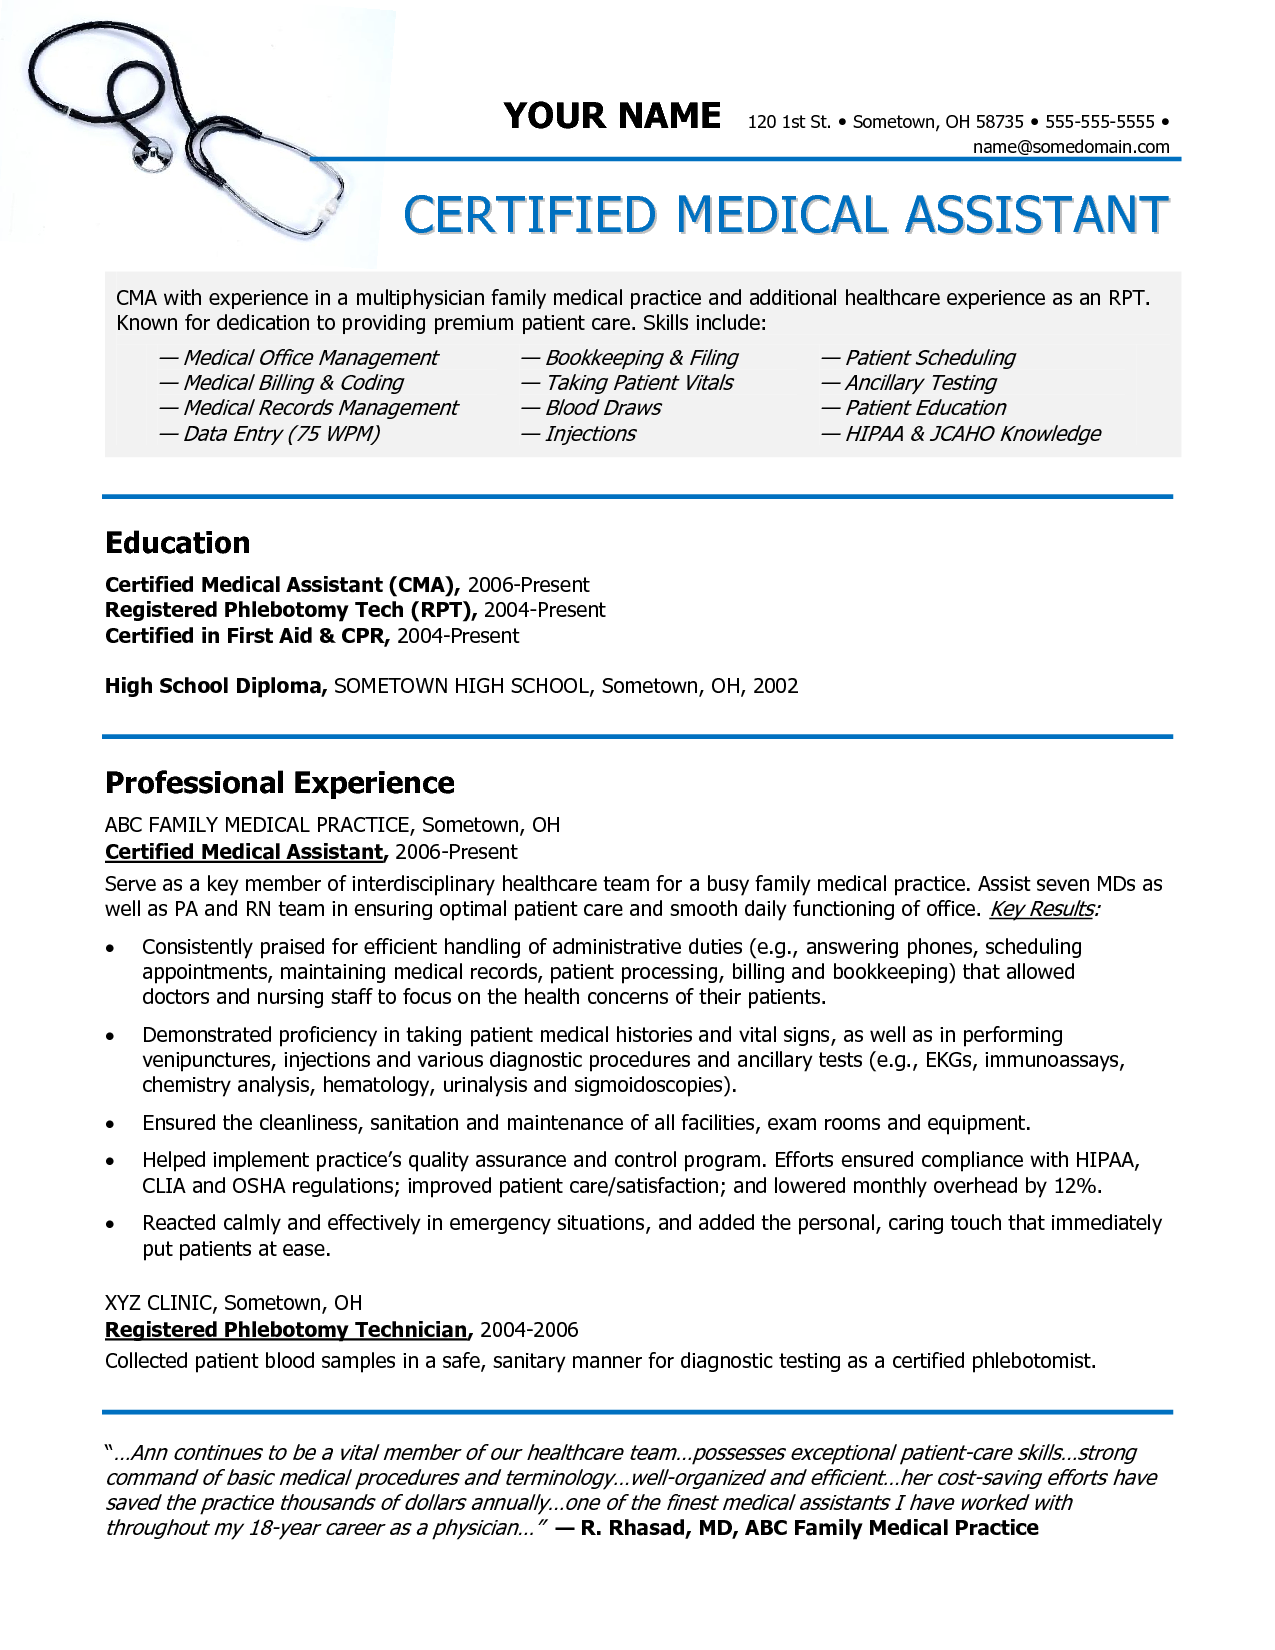 medical assistant resume entry level examples medical assistant - Certified Medical Assistant Resume